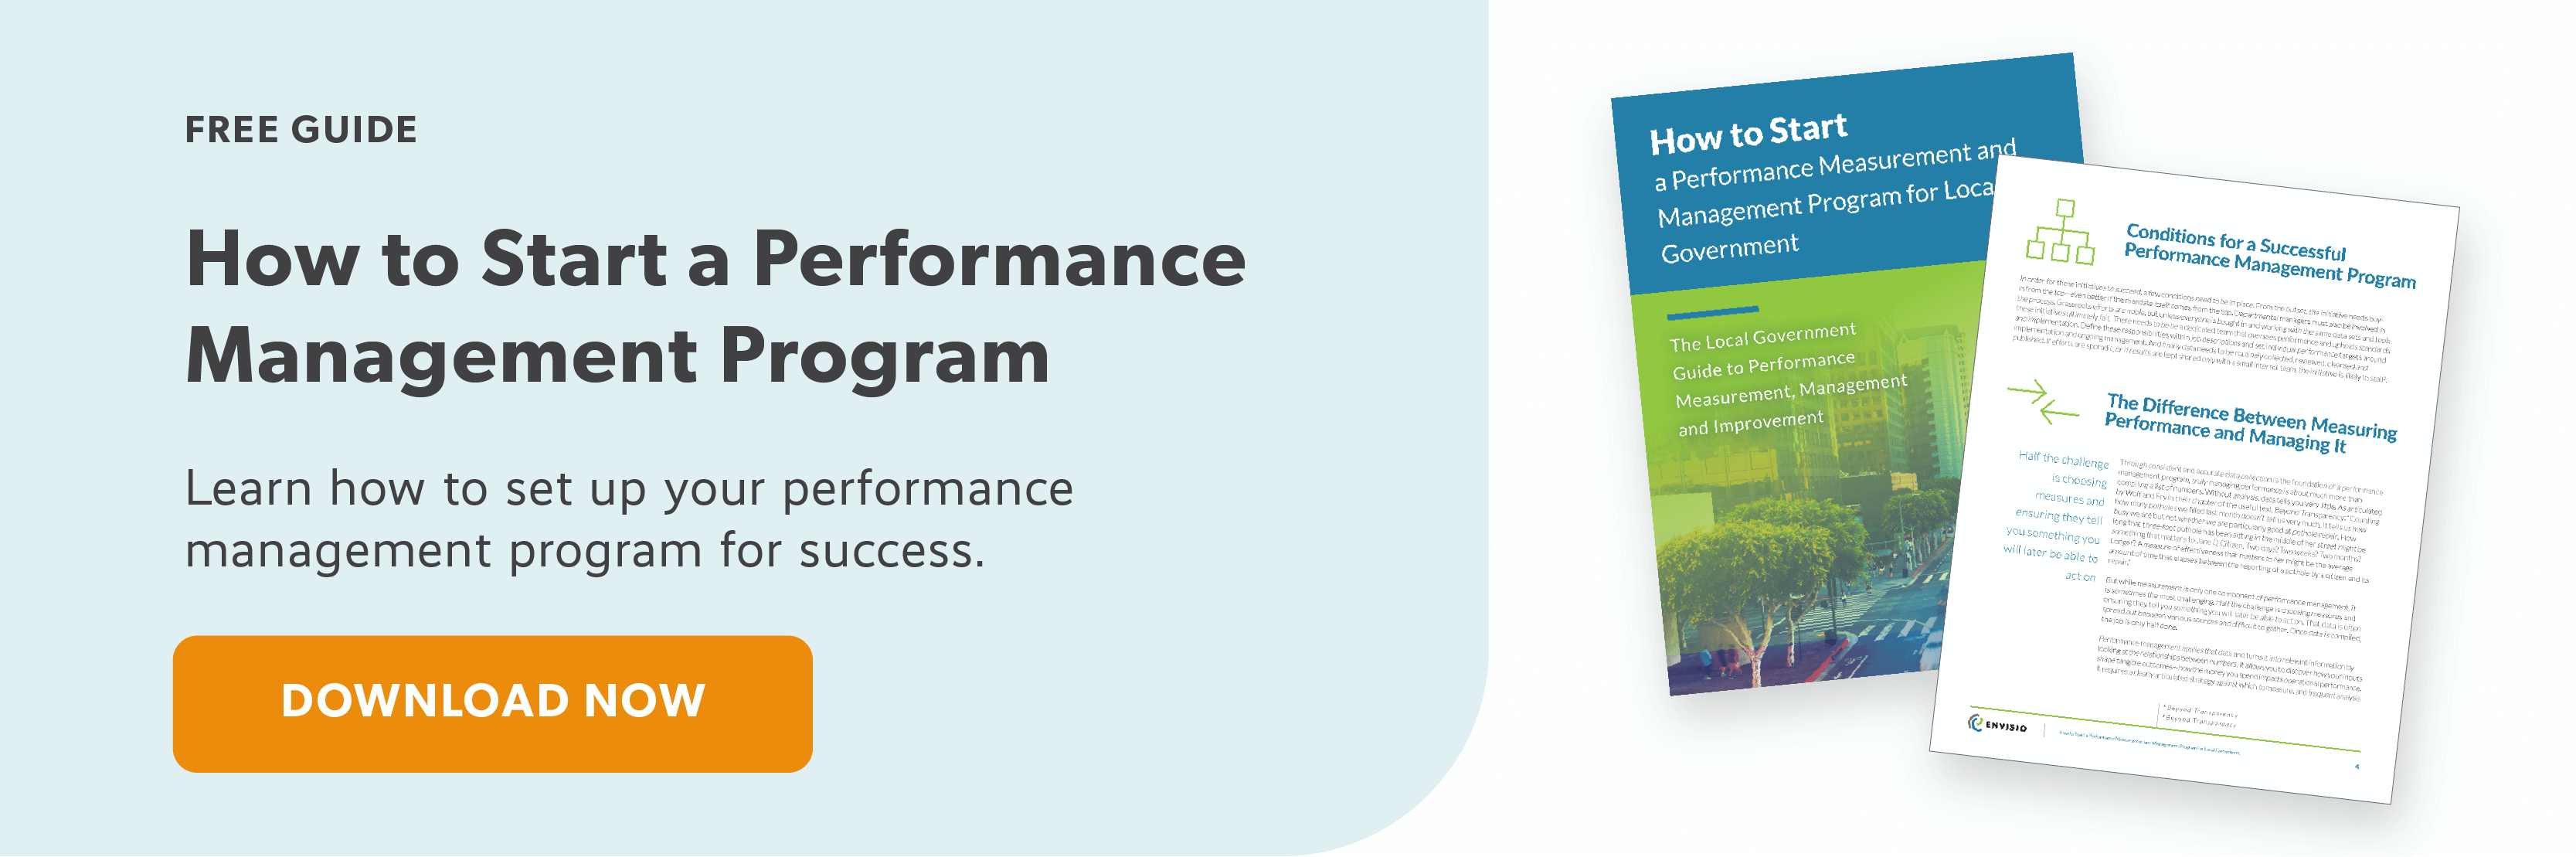 Performance Management Guide